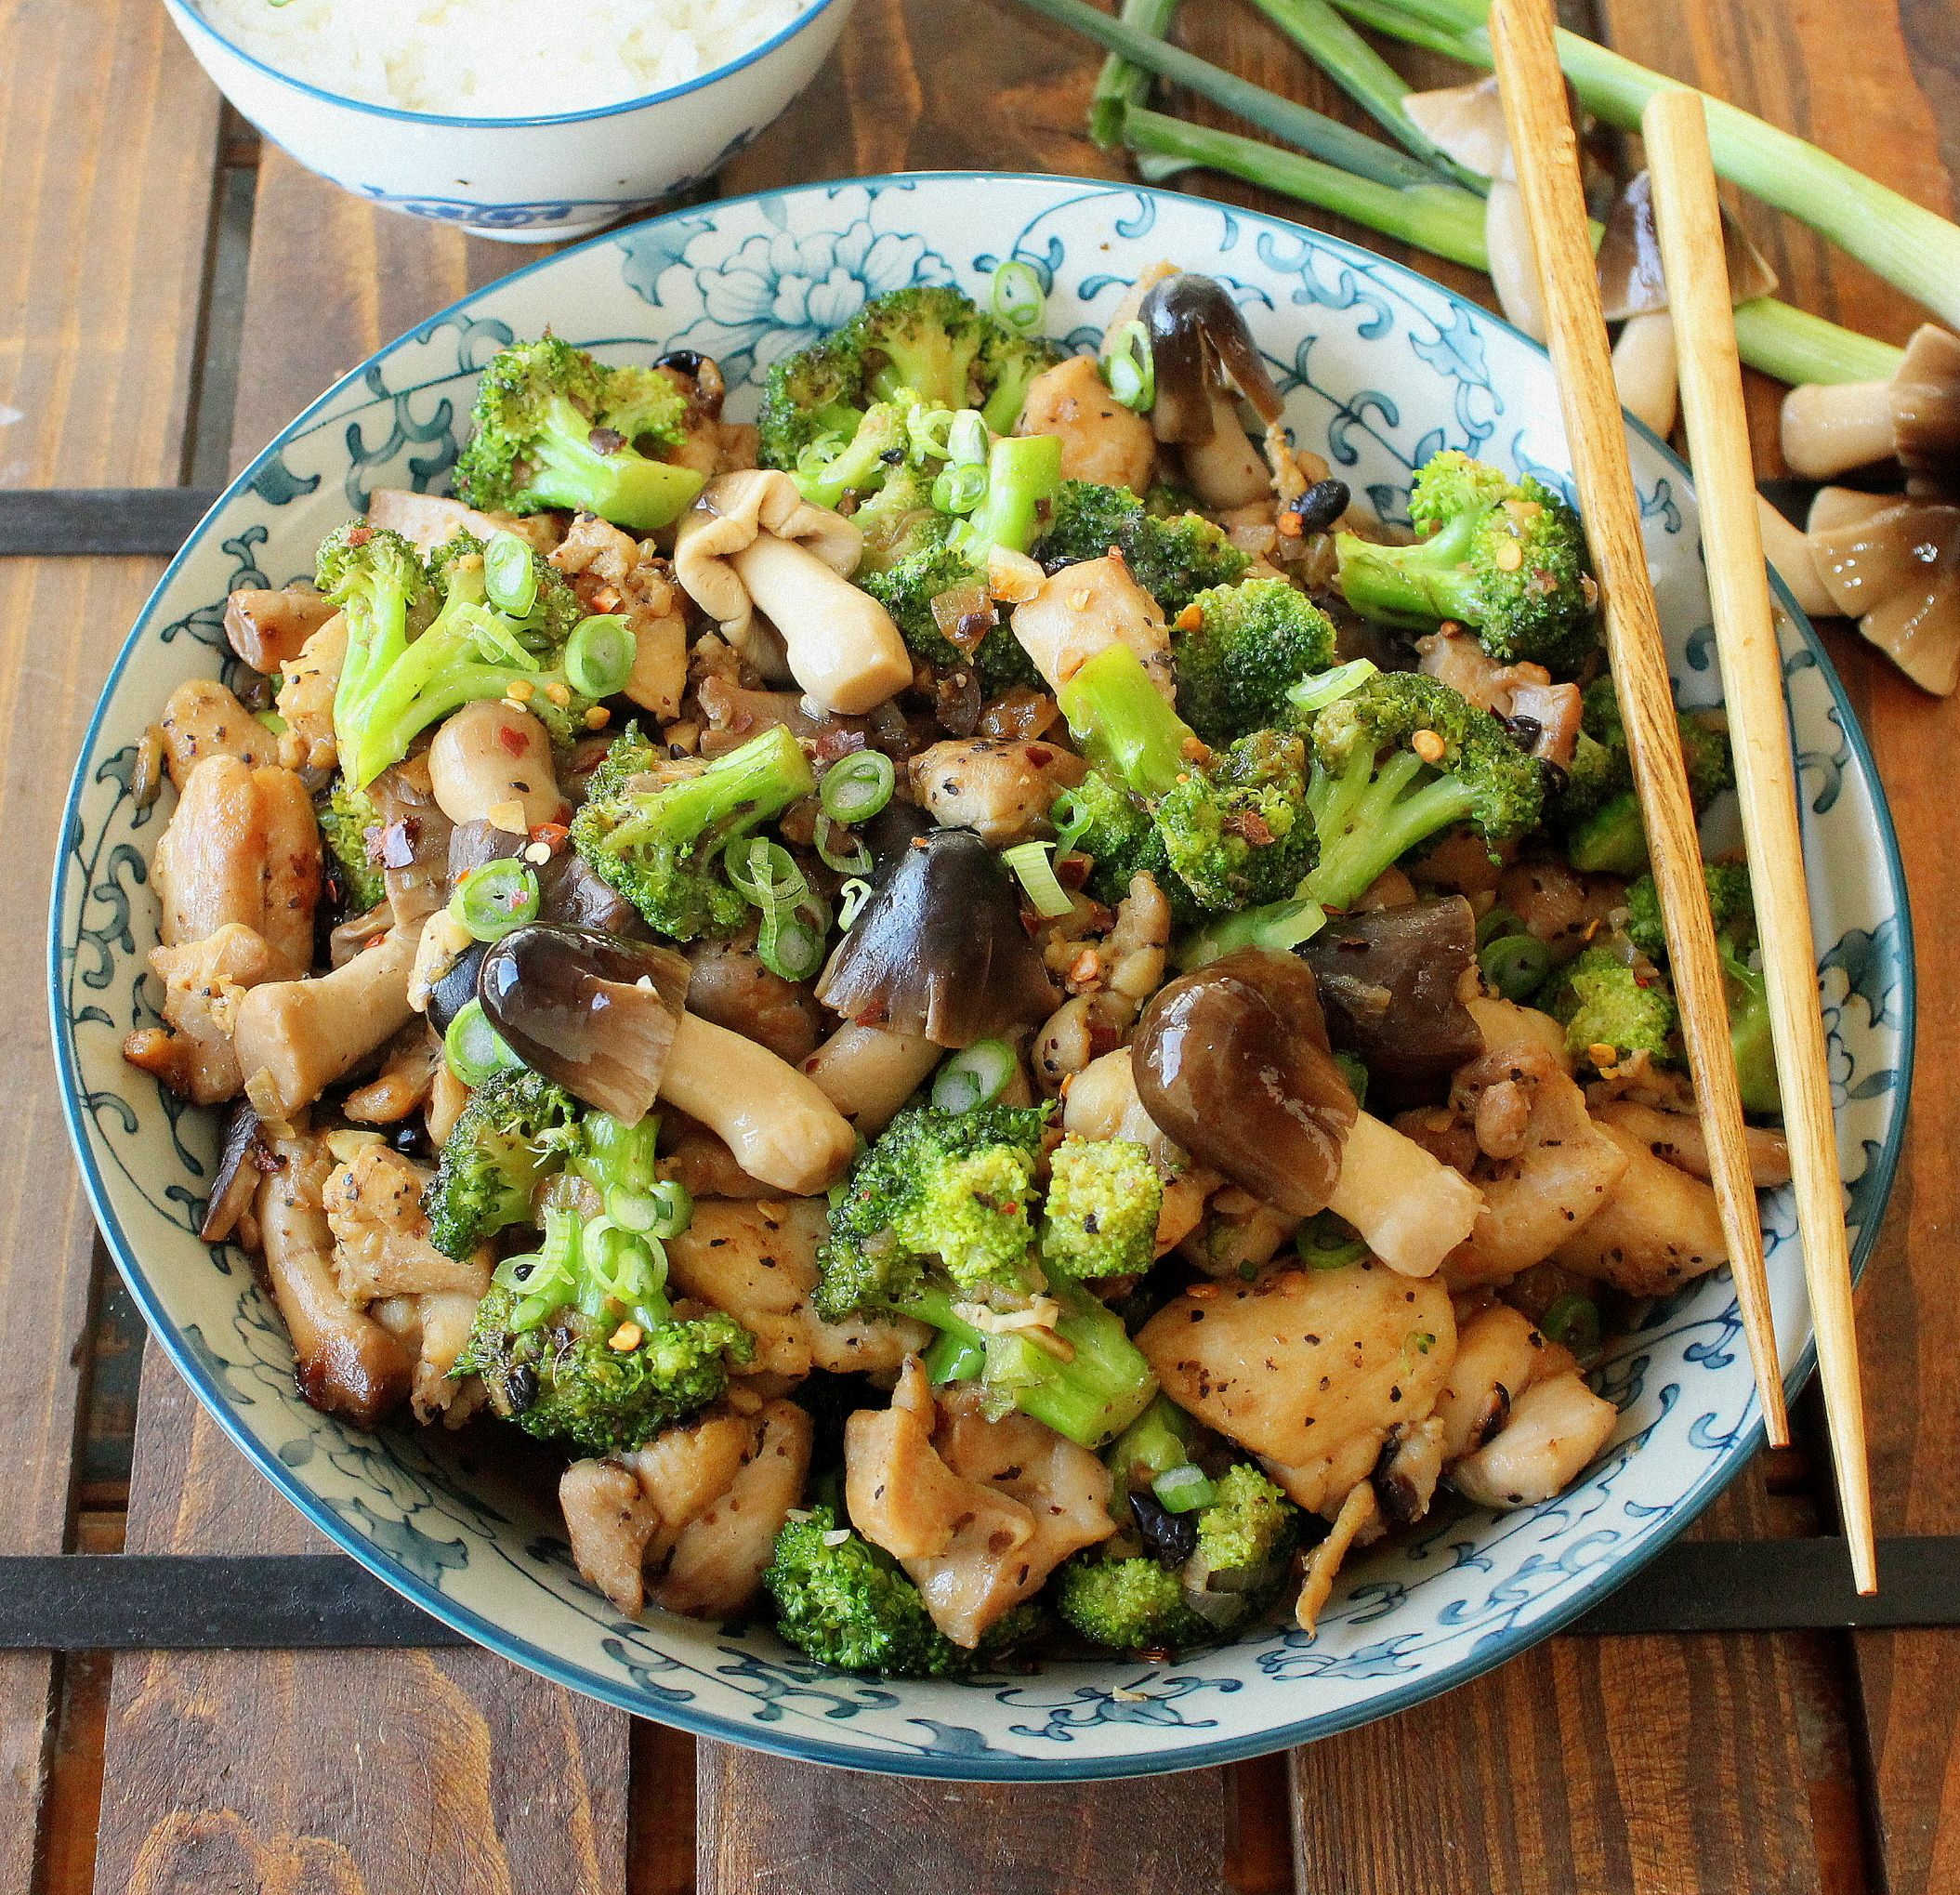 Stir Fry Chicken With Broccoli And Mushrooms Recipe Stuffed Mushrooms Broccoli Recipes Broccoli